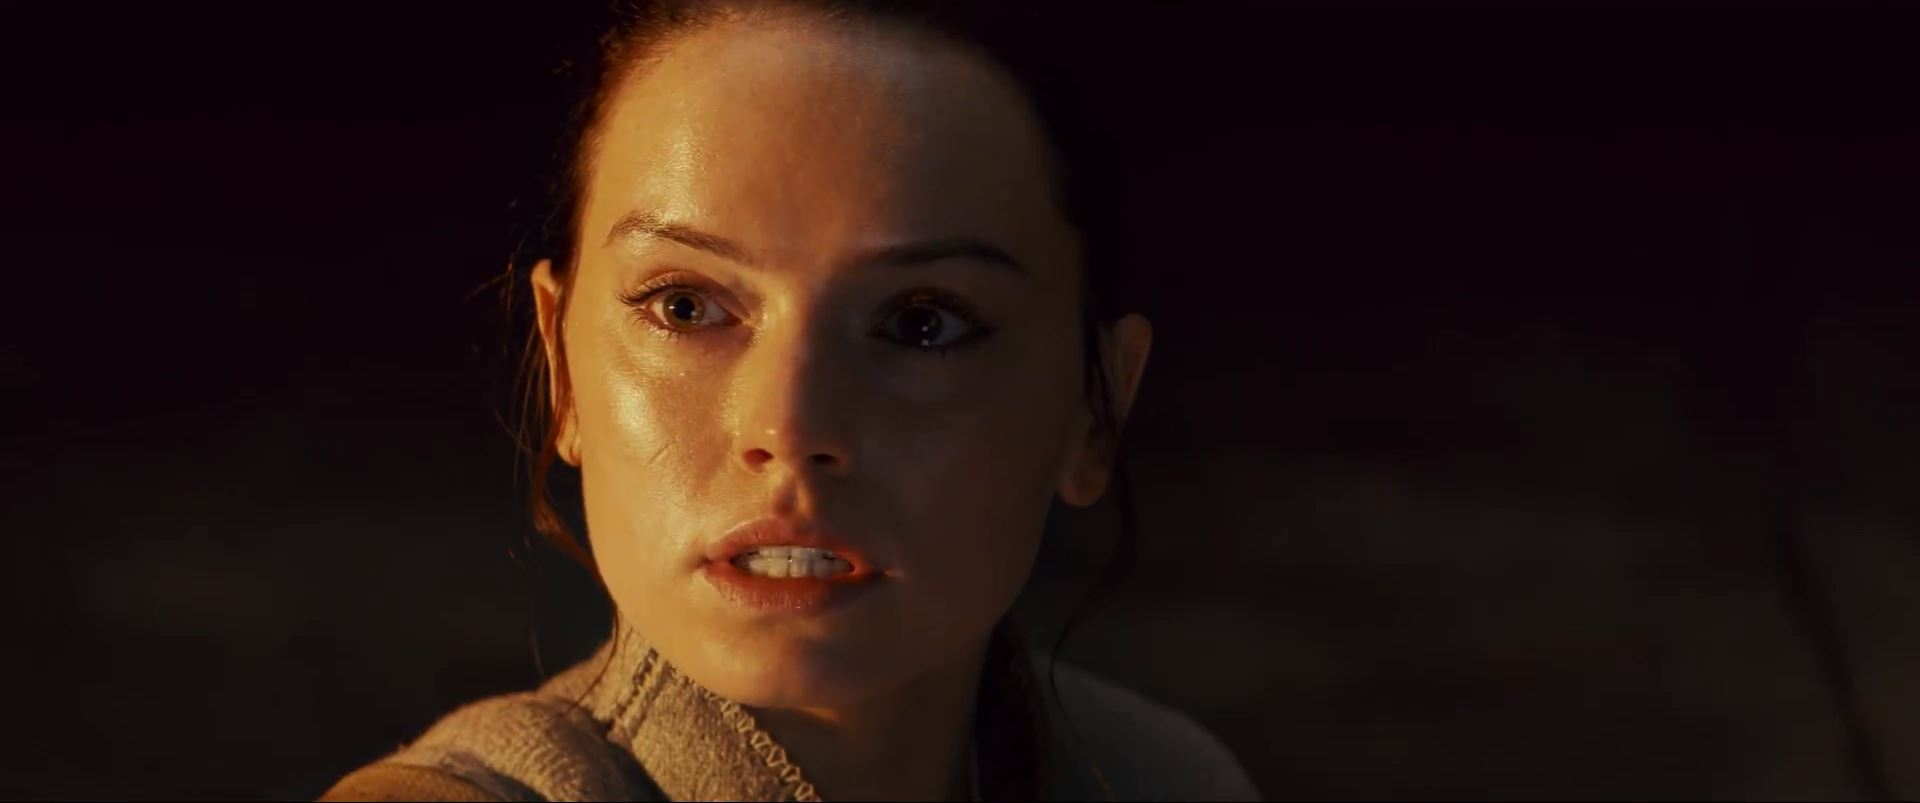 The Last Jedi Trailer - Daisy Ridley as Rey